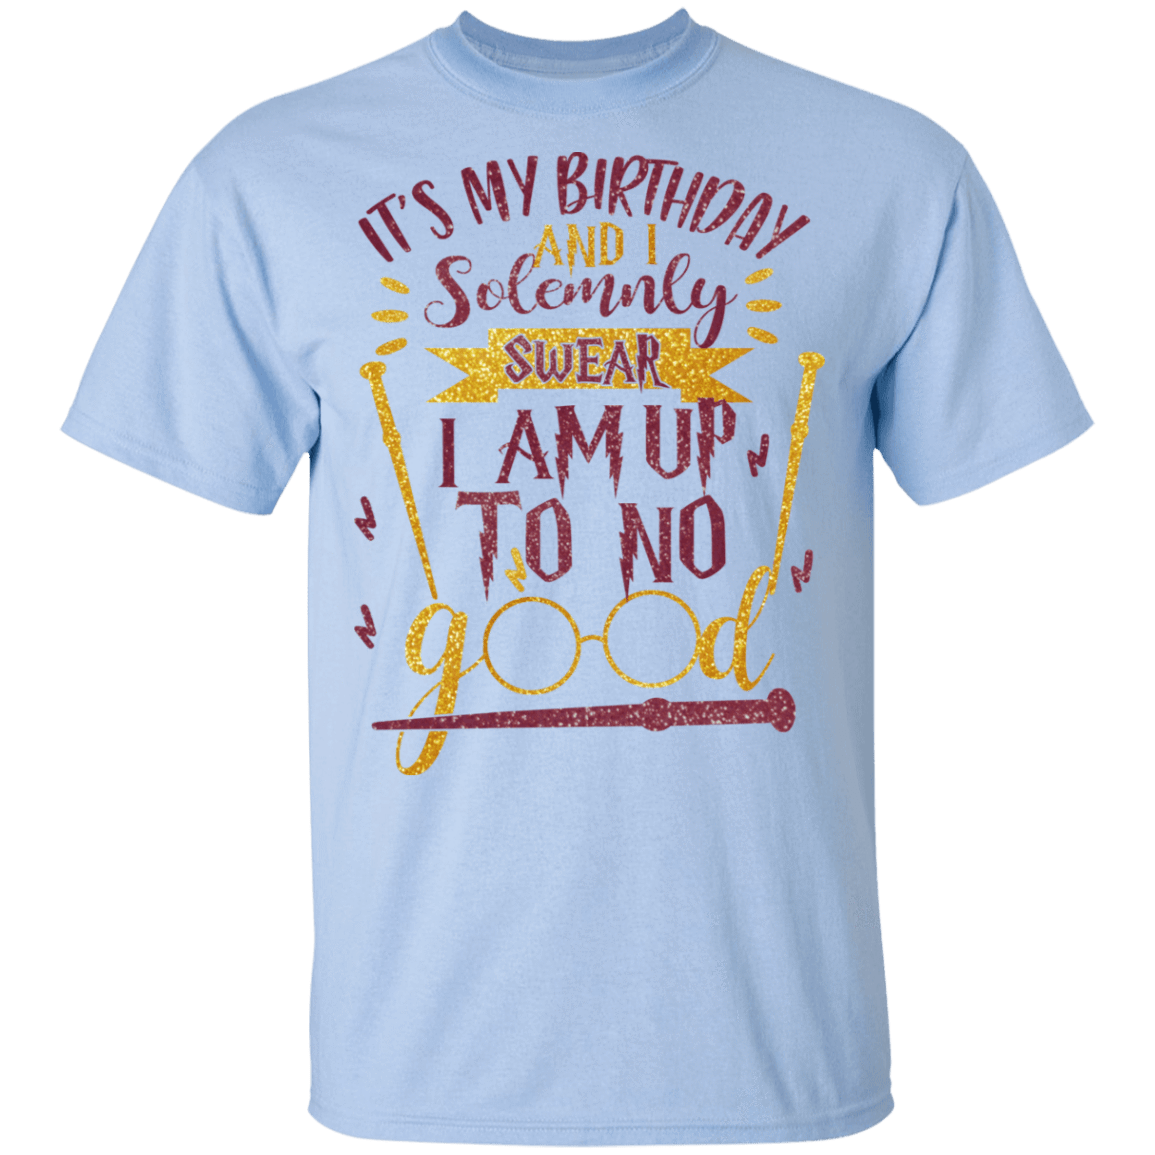 It's My Birthday And Solemnly Swear I Am Up To No Good T-Shirts, Hoodies, Tank 22-9800-80184337-47430 - Tee Ript